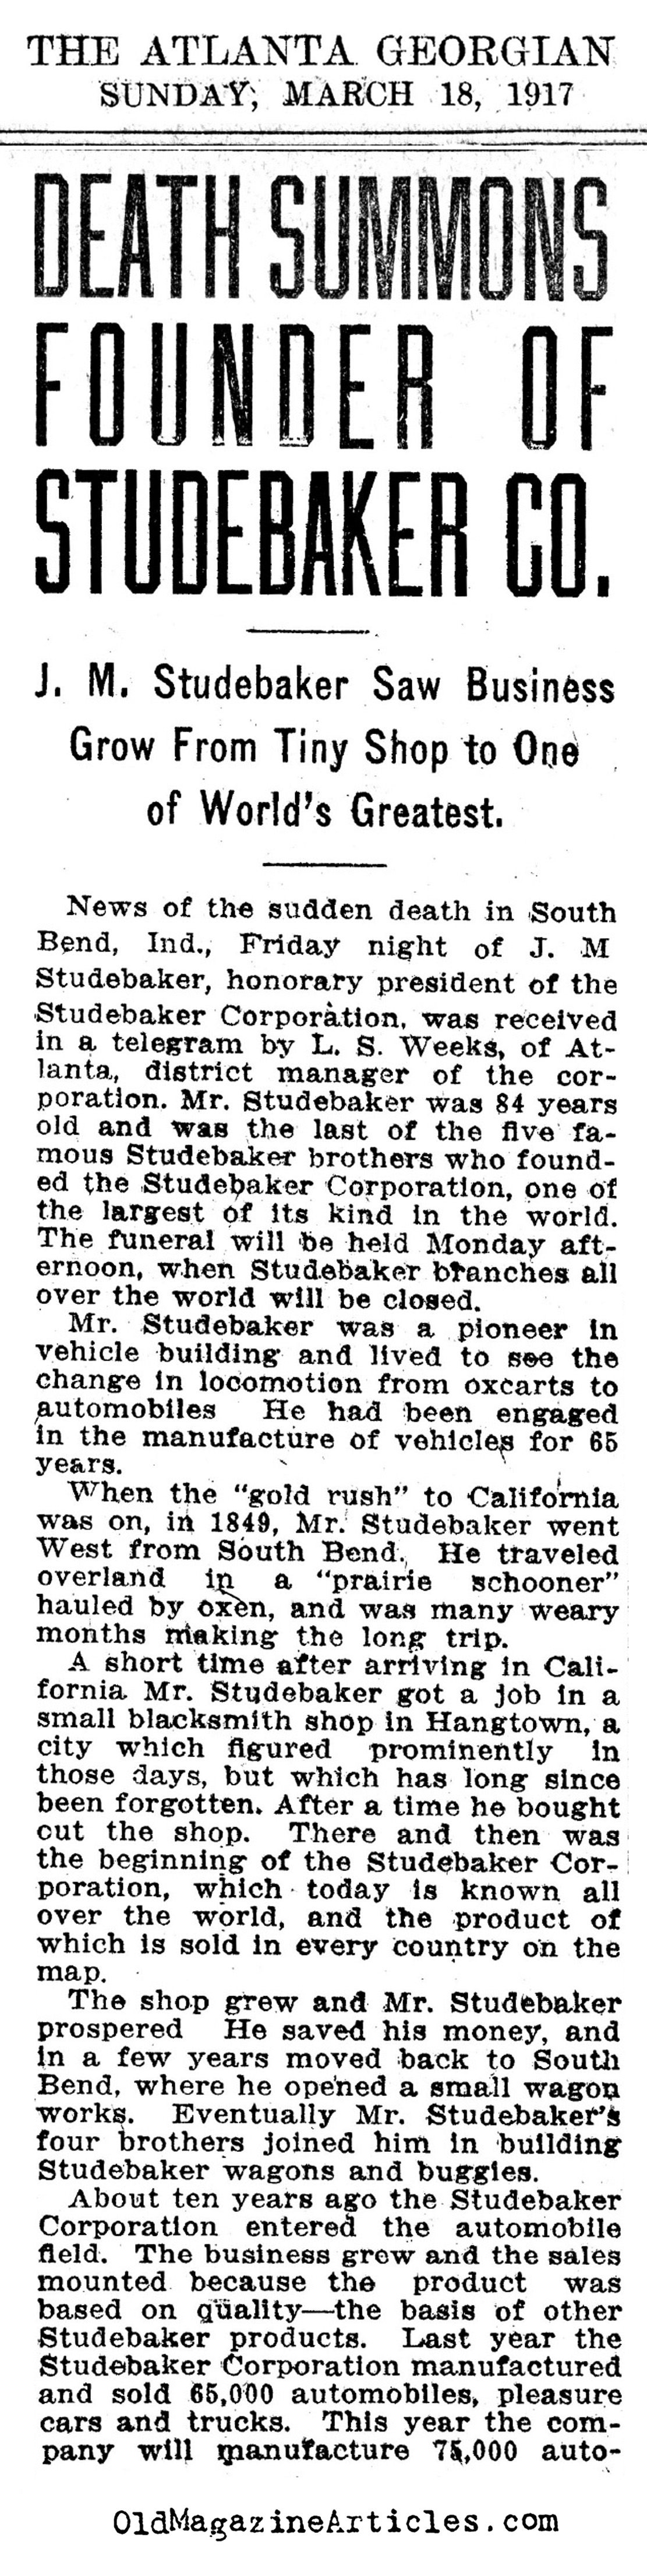 The Obituary of J.M. Studebaker  (The Atlanta Georgian, 1917)